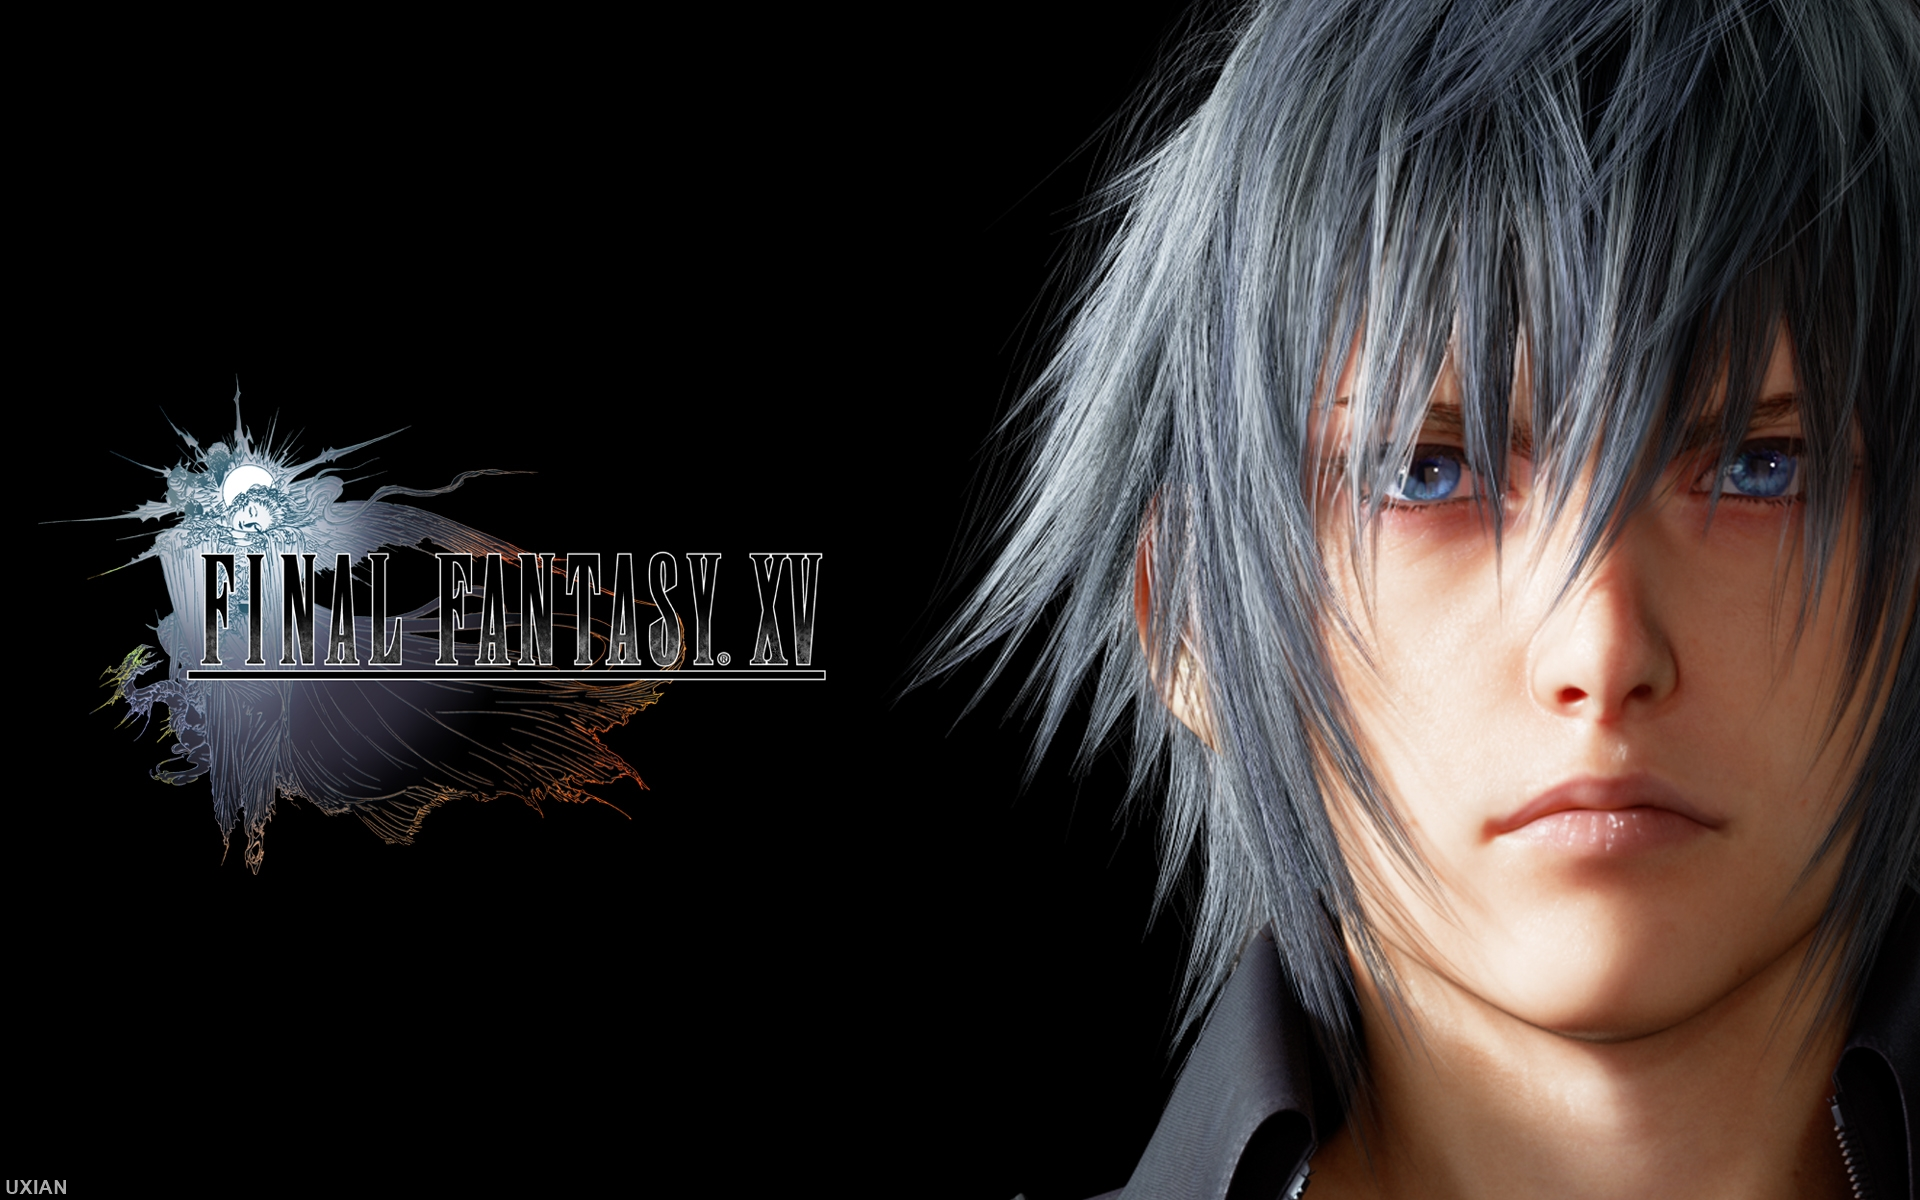 Noctis Lucis Caelum Final Fantasy Xv Artwork Hd Games 4k: Final Fantasy XV By UxianXIII On